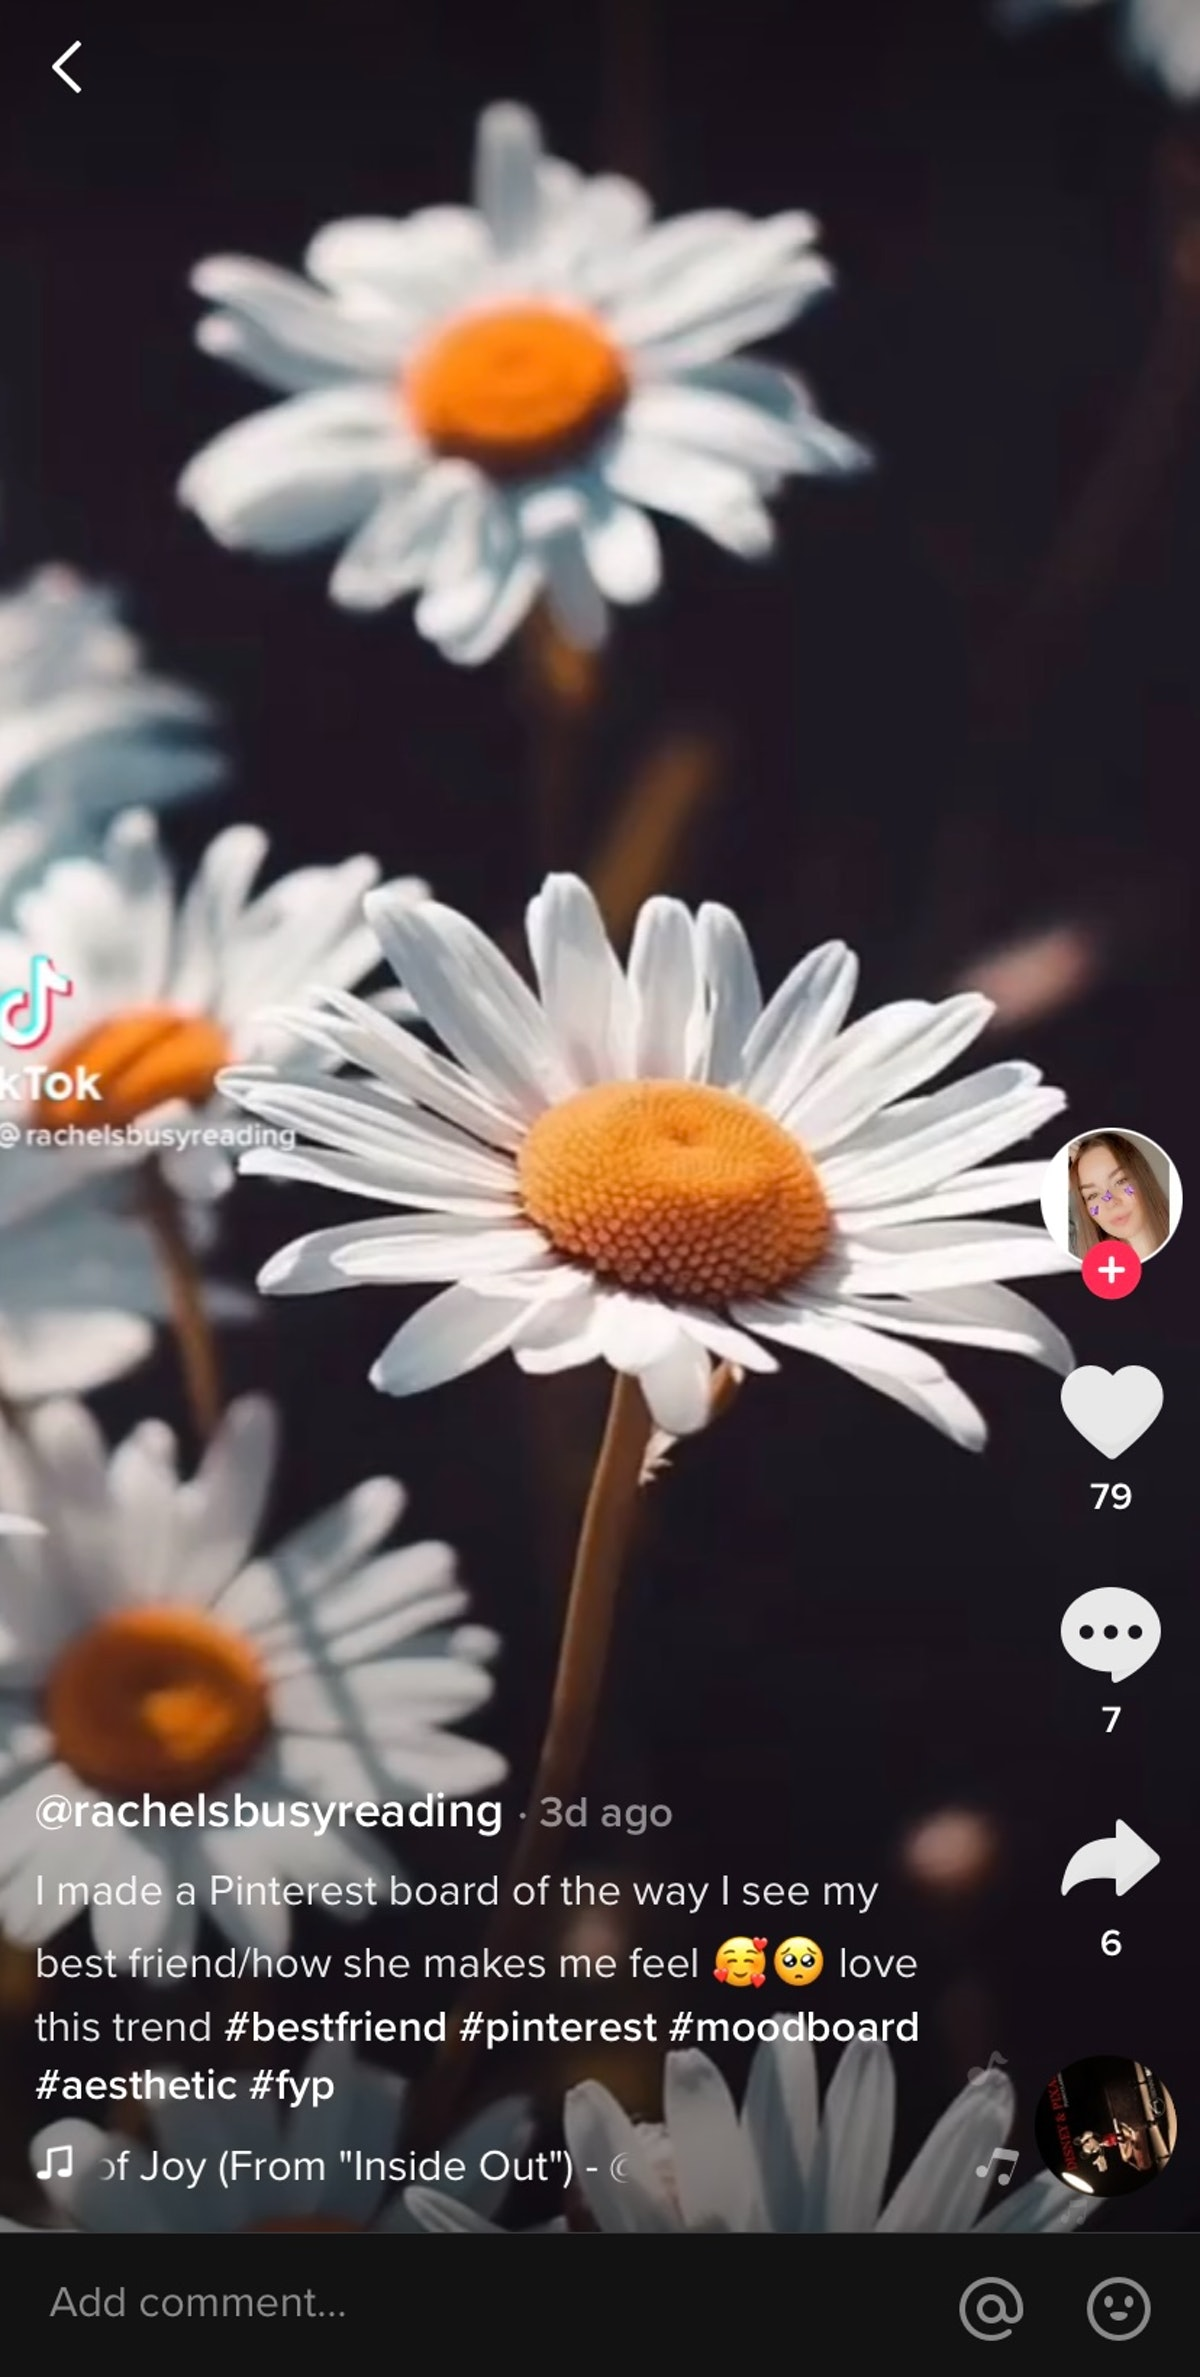 A TikToker makes a BFF Pinterest board that includes a stunning photo of daisies.